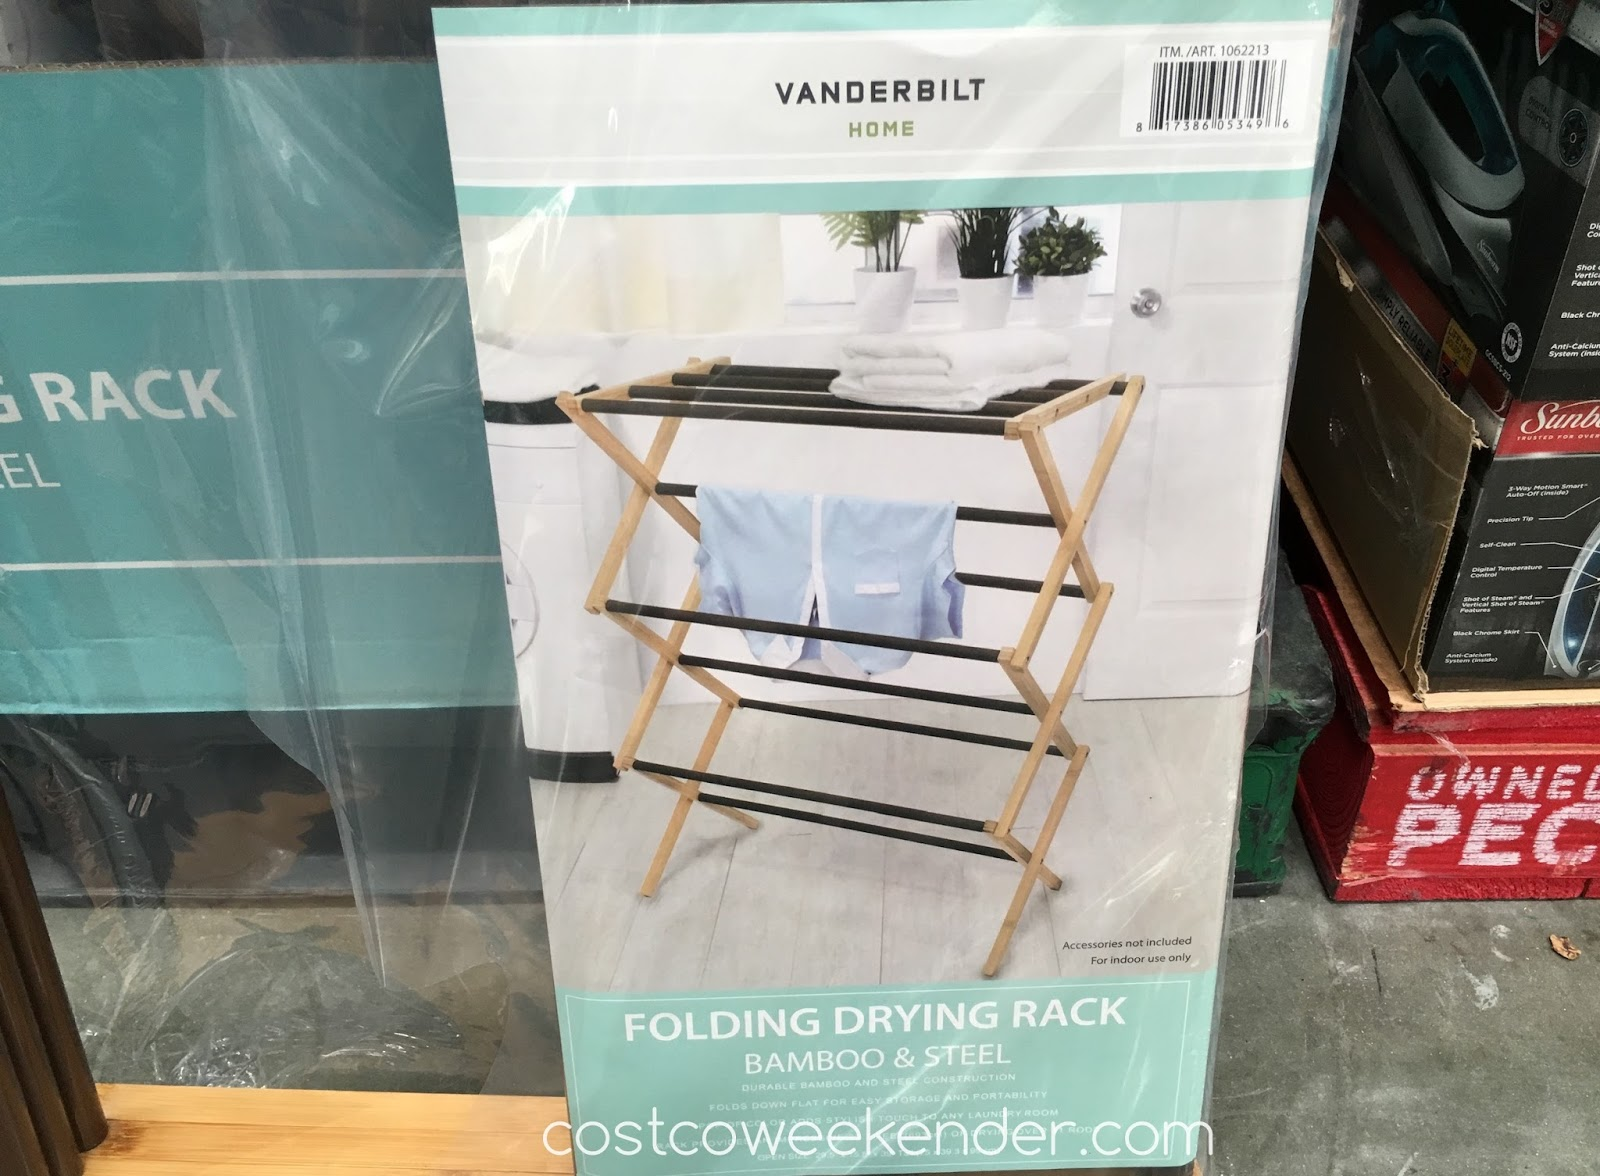 vanderbilt folding drying rack bamboo steel costco weekender. Black Bedroom Furniture Sets. Home Design Ideas